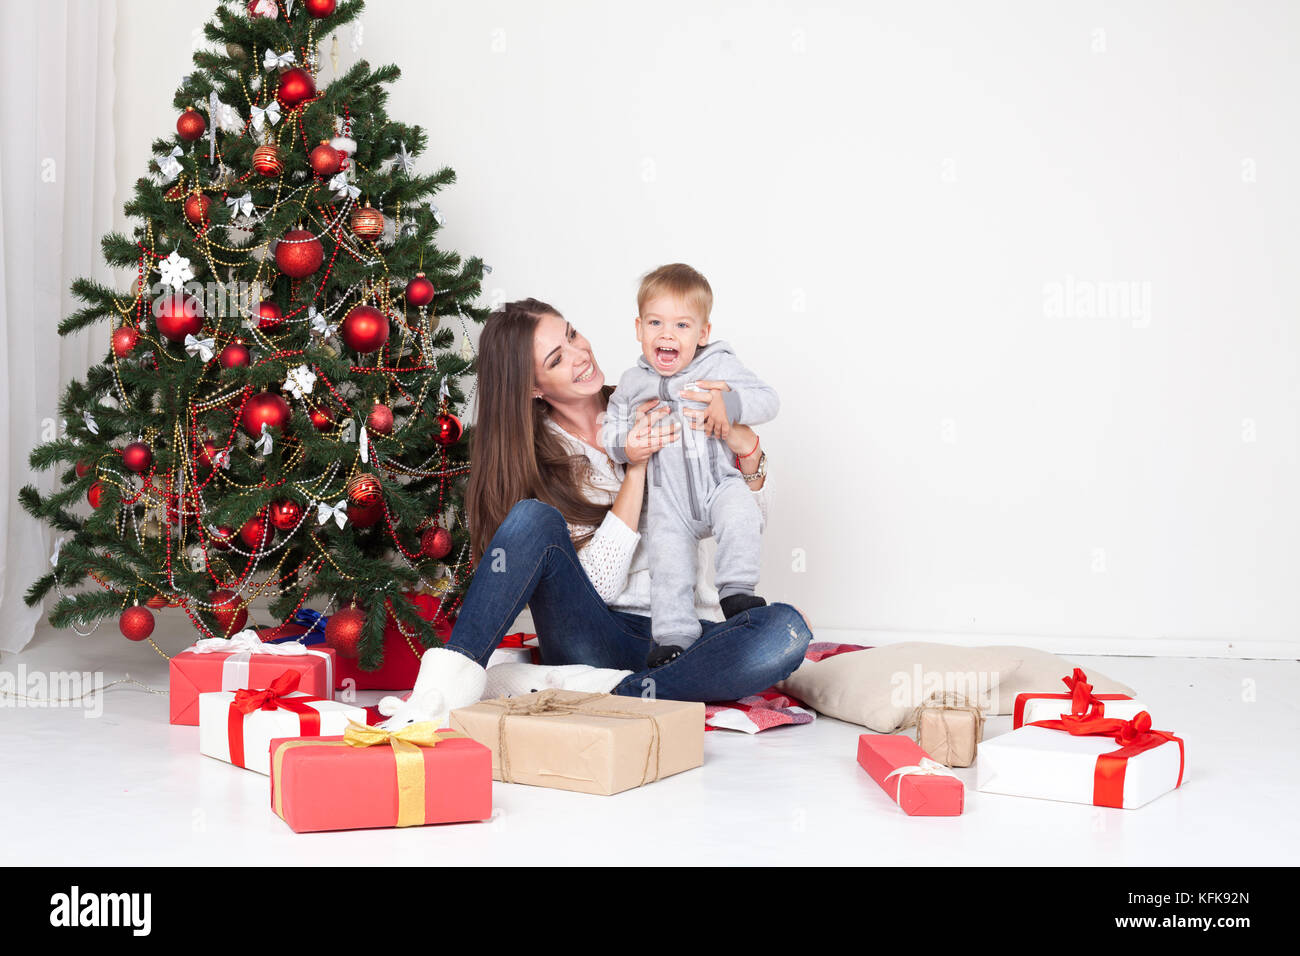 Mother And Son Shopping Stock Photos & Mother And Son Shopping Stock ...